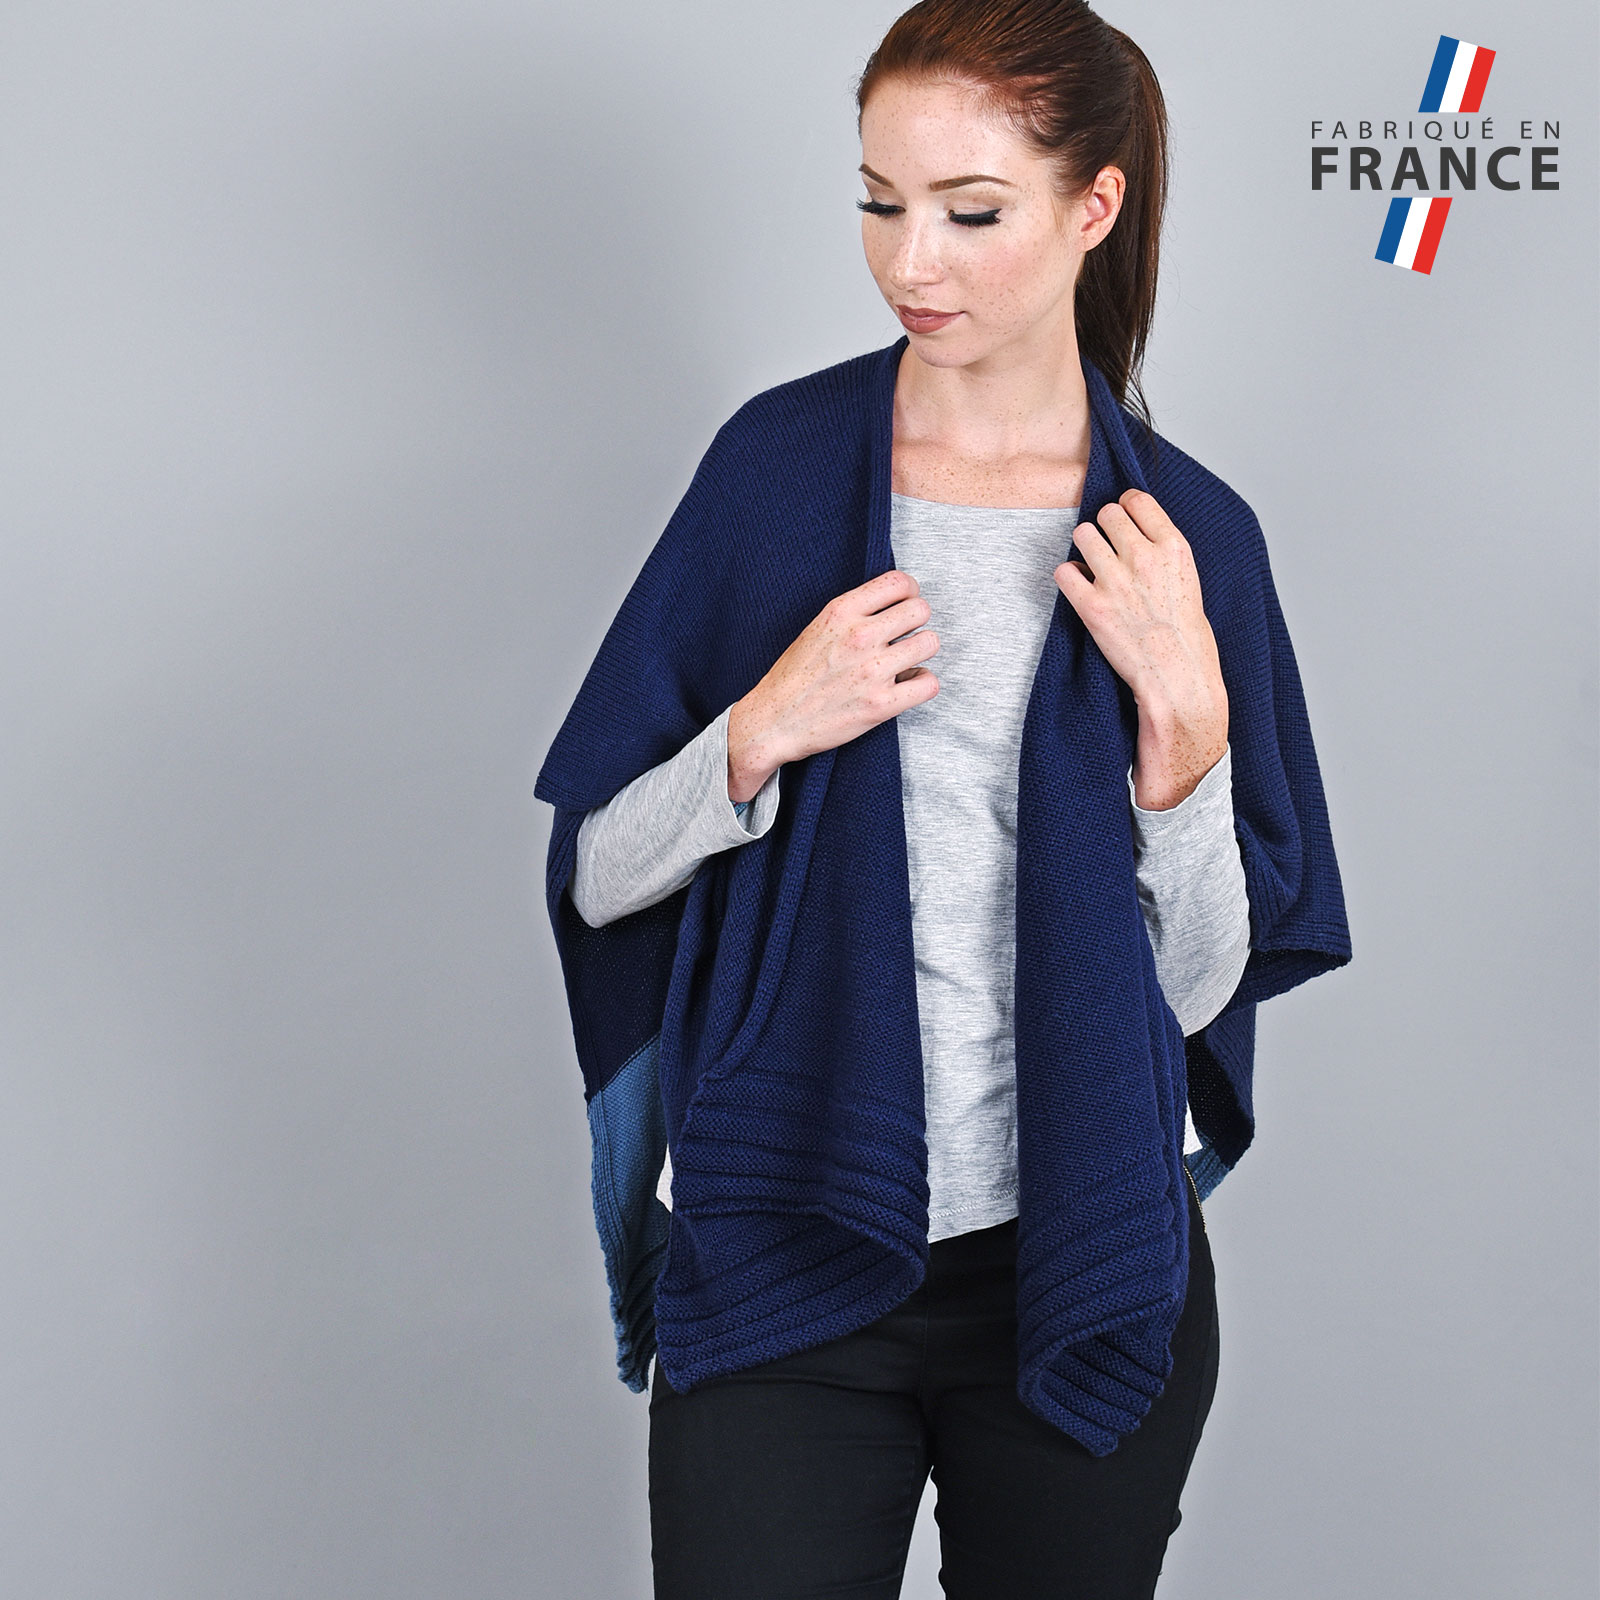 AT-03196-VF16-1-LB_FR-poncho-gilet-bleu-fabrication-francaise